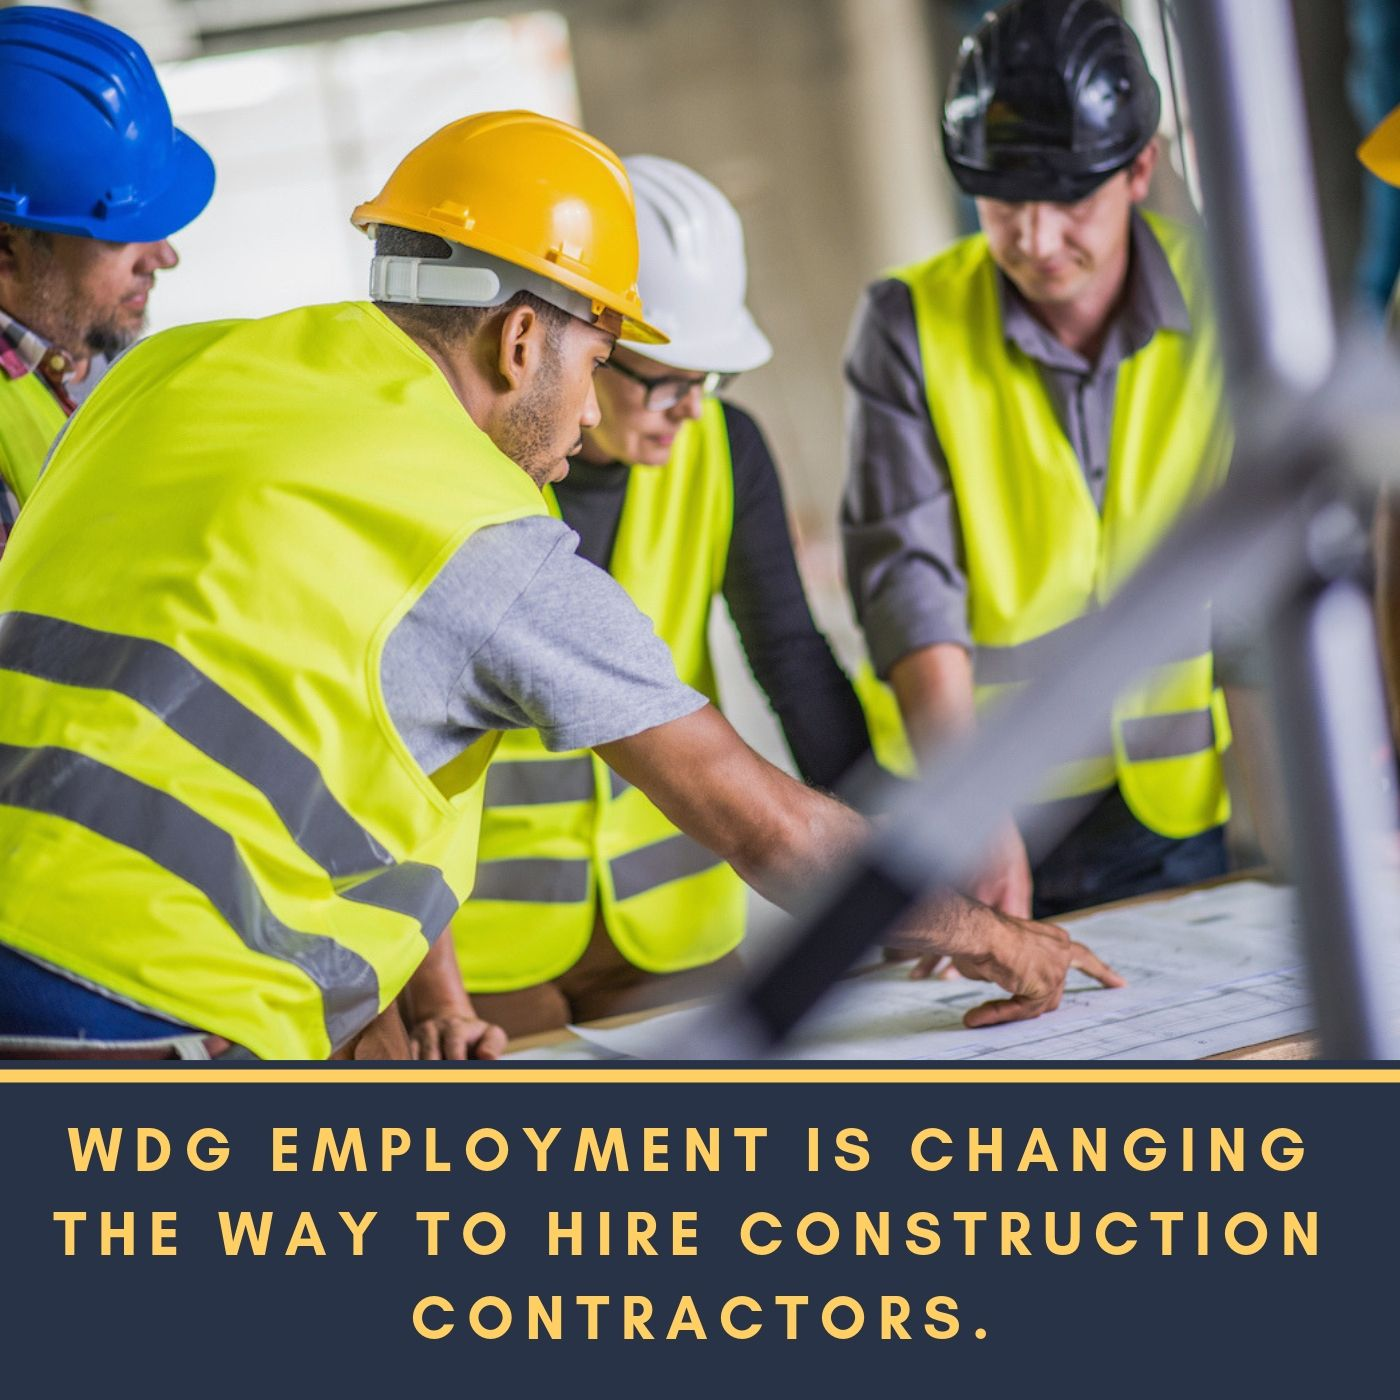 Wdg Employment Is Changing The Way To Hire Construction Contractors